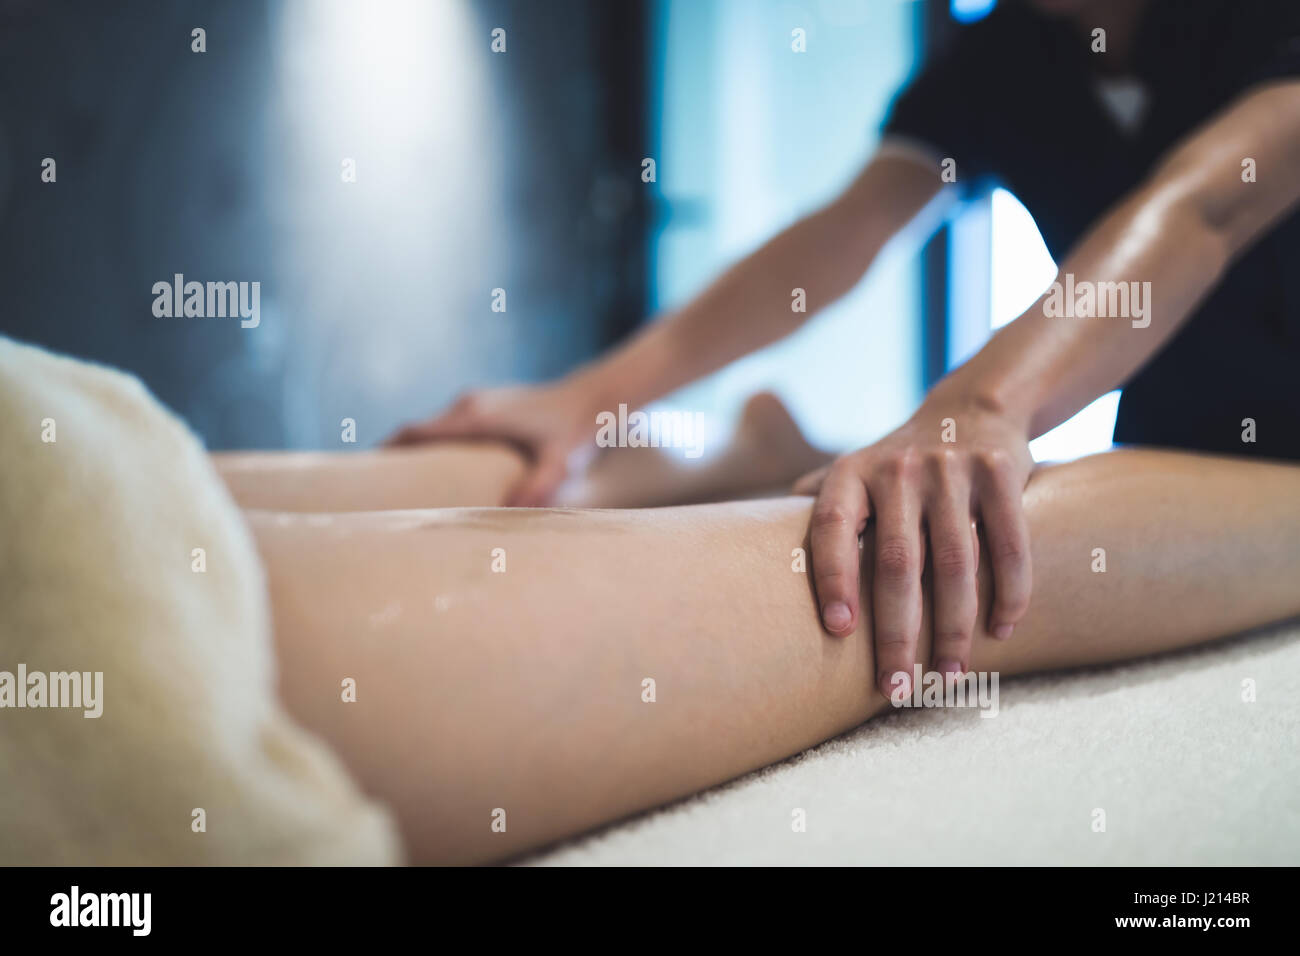 Masseur massaging masseuse during therapeutic tretment at resort - Stock Image